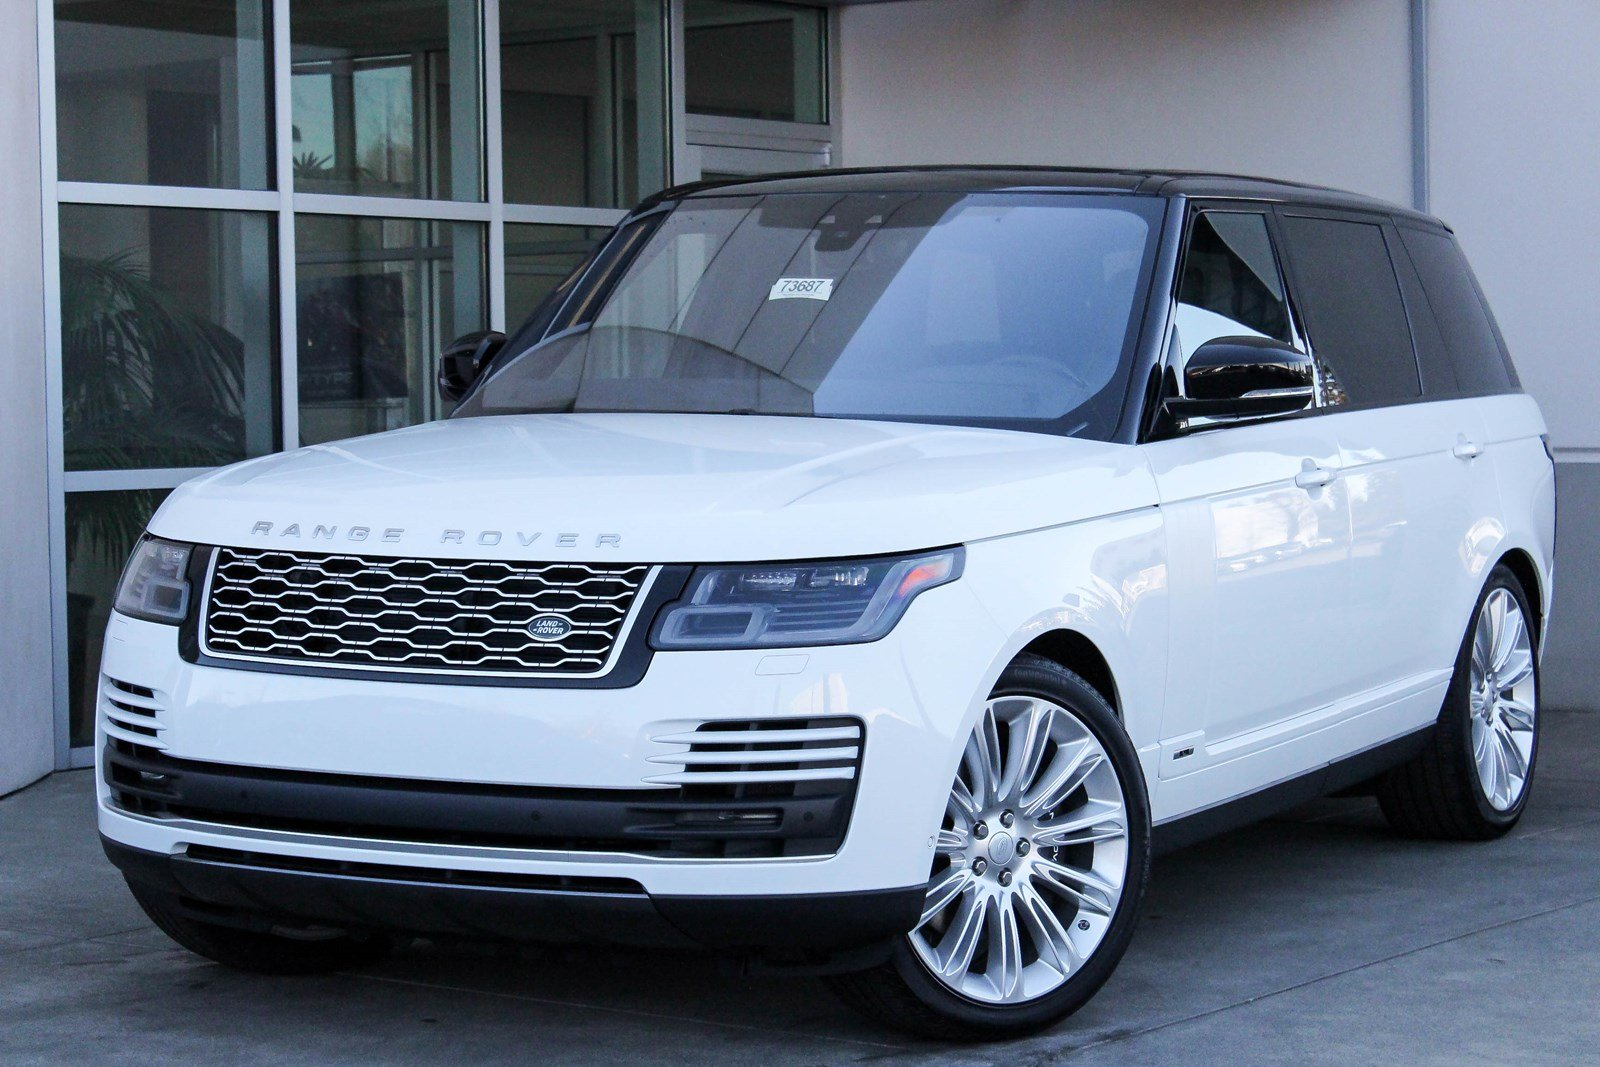 Land Rover Bellevue >> New 2018 Land Rover Range Rover Supercharged LWB Sport Utility in Bellevue #73687 | Land Rover ...